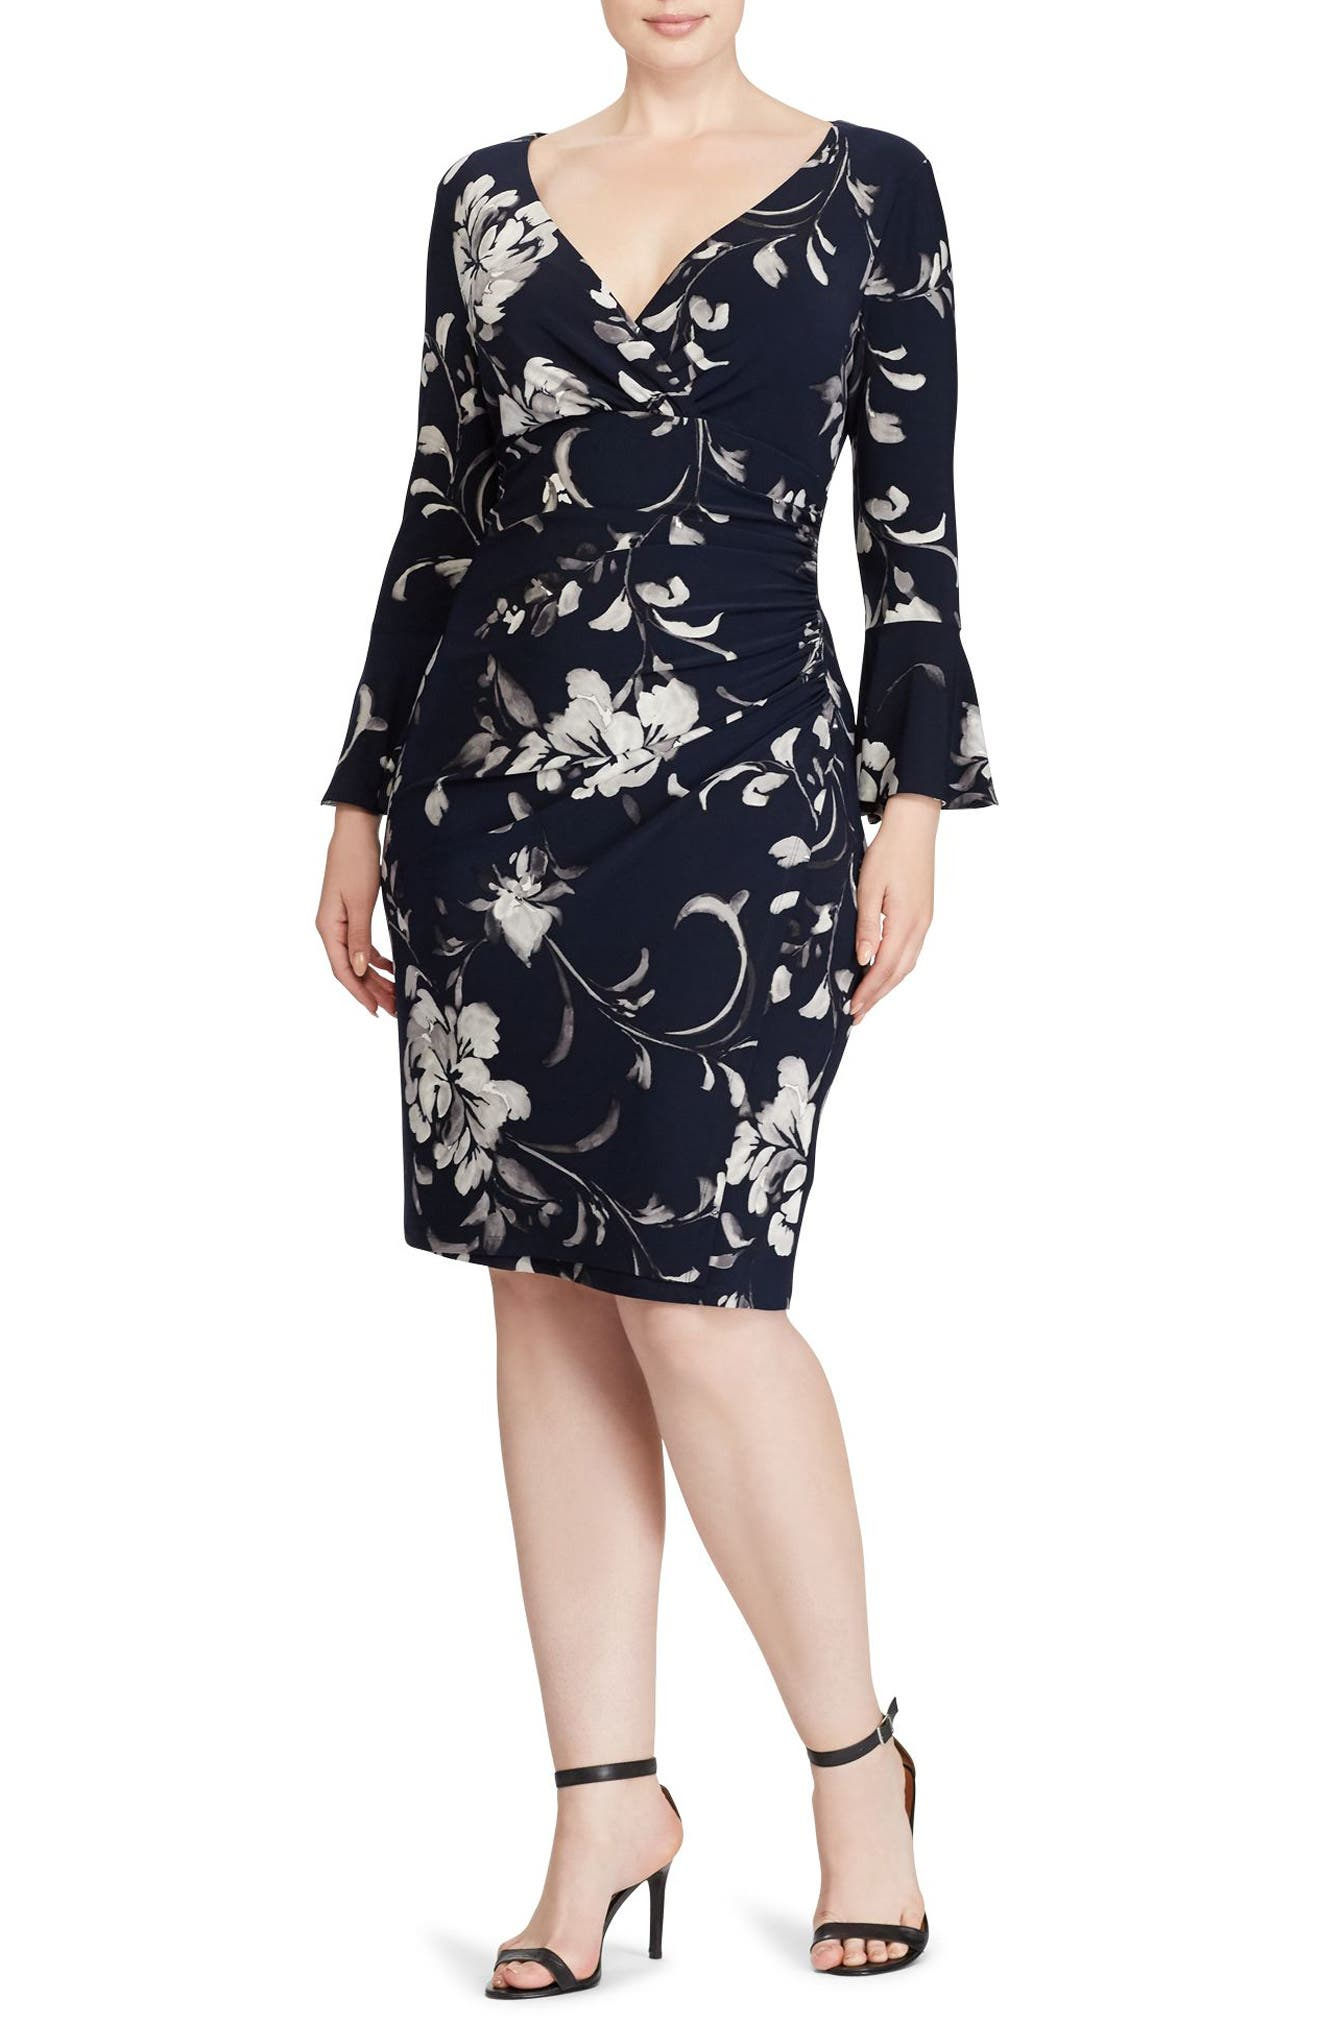 Alternate Image 1 Selected - Lauren Ralph Lauren Floral Bell Sleeve Jersey Dress (Plus Size)